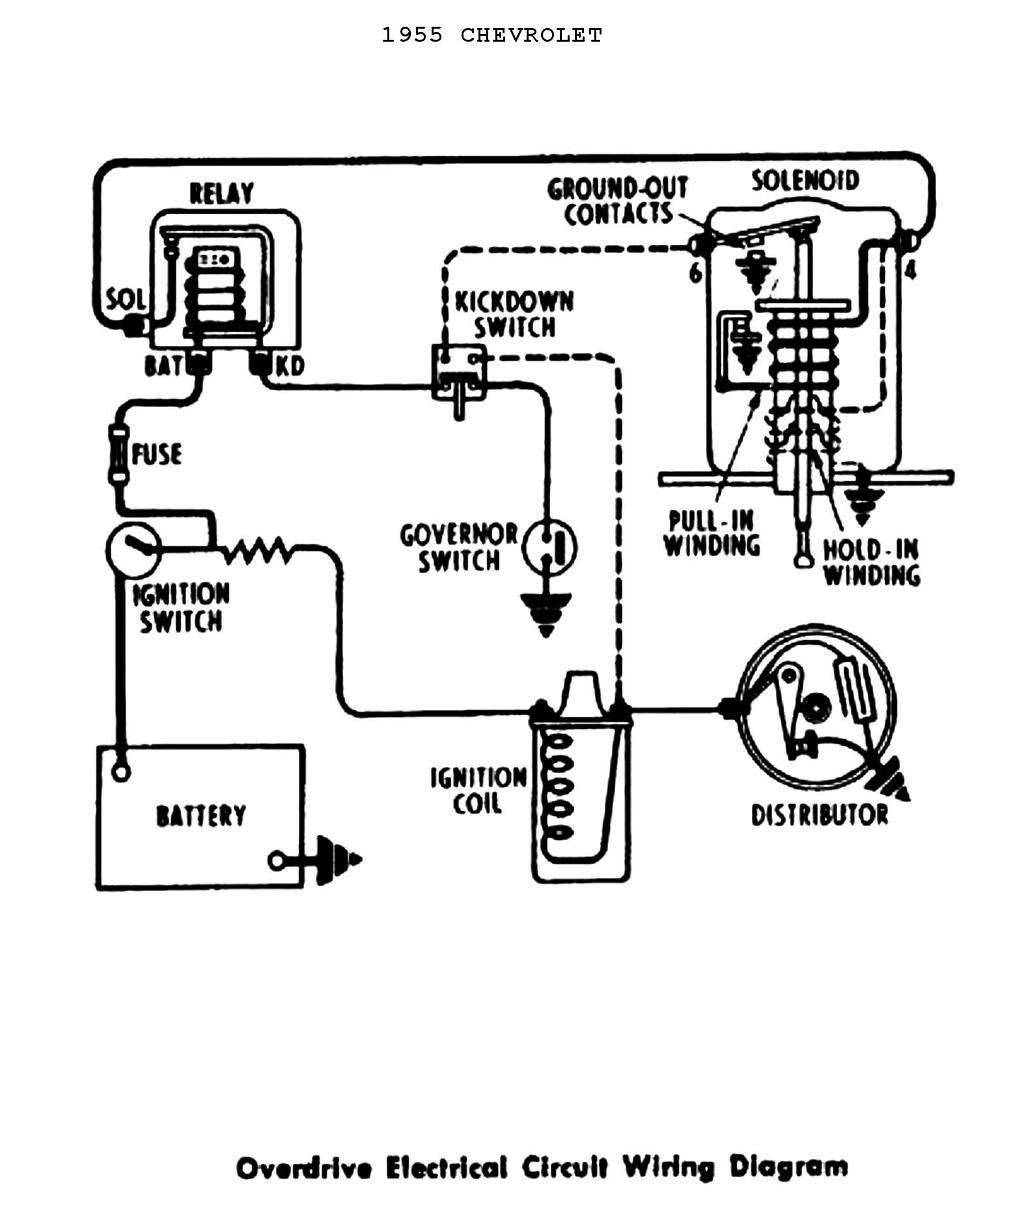 hight resolution of hei coil wiring diagram wiring diagram database 1972 corvette ignition coil wiring diagram basic